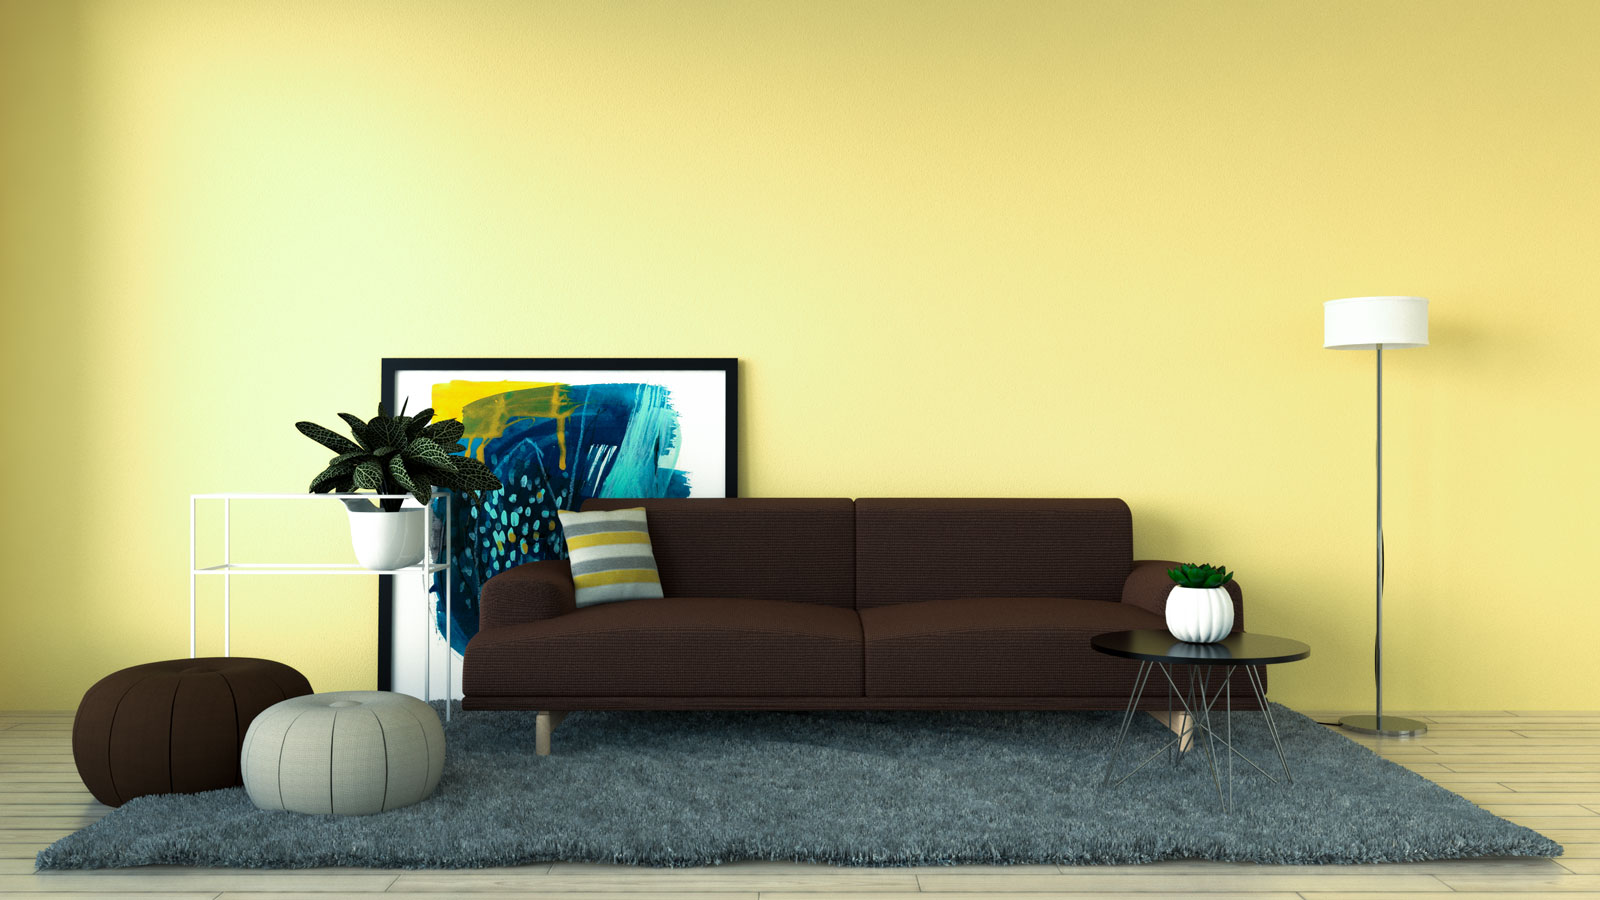 Pale yellow wall with brown couch in living room